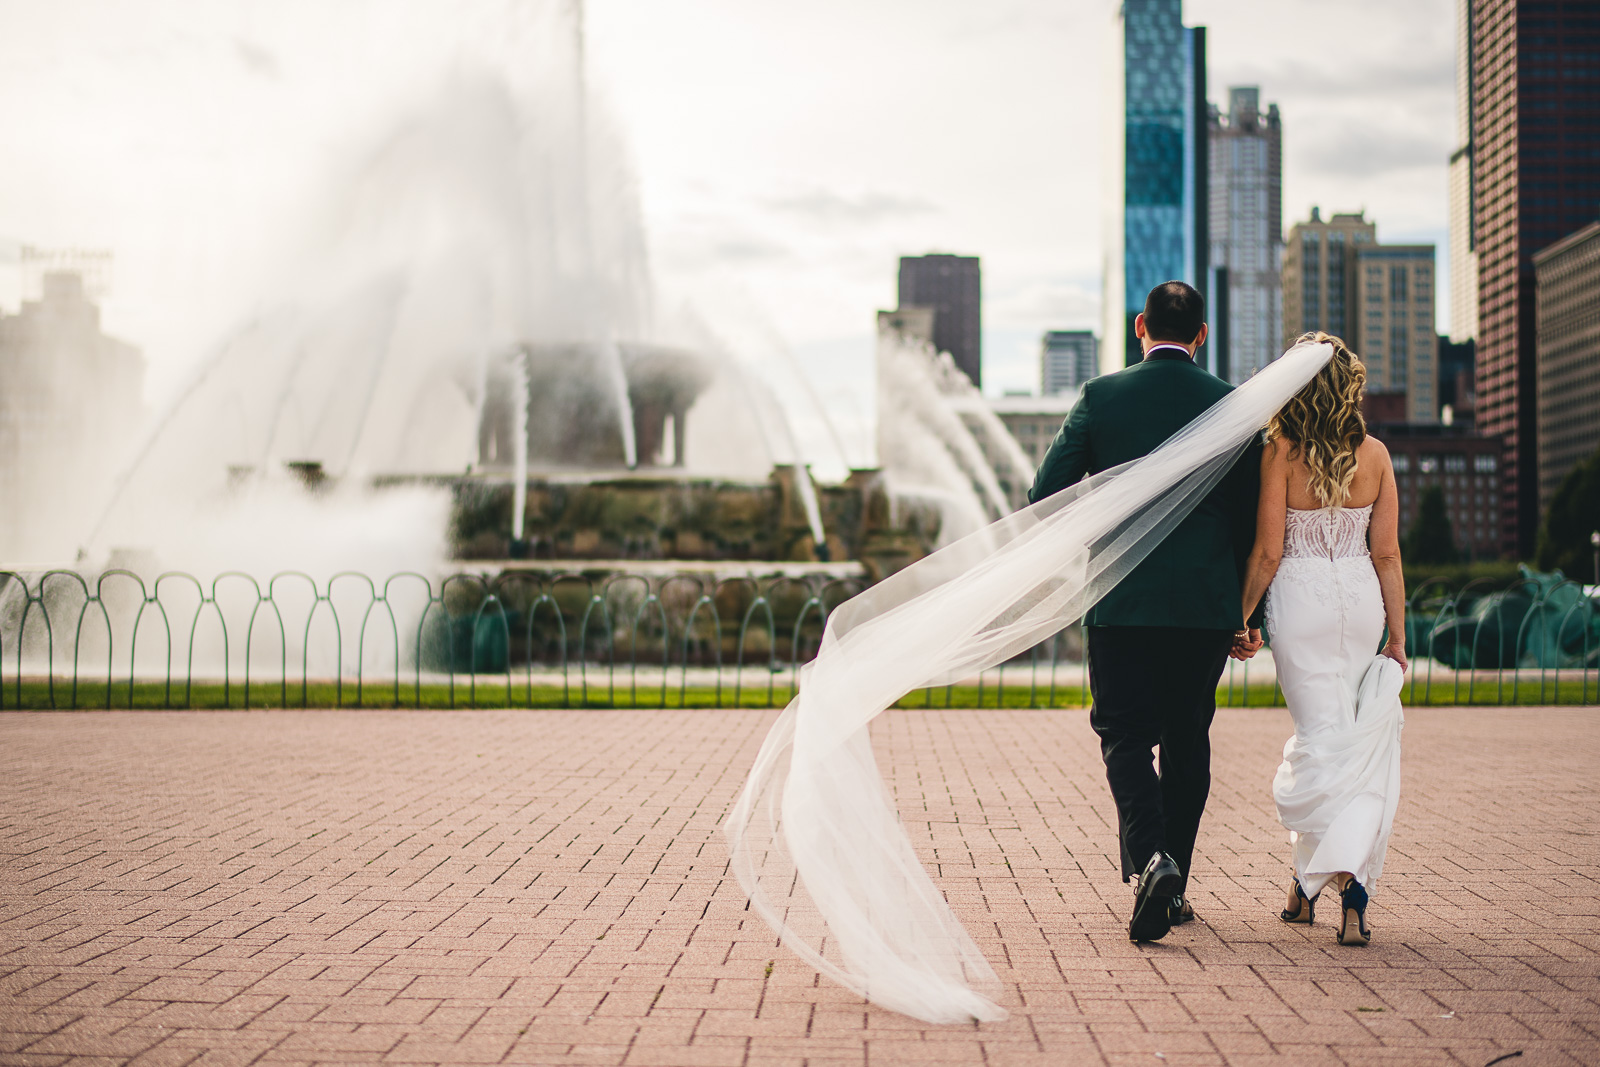 111 chicago wedding photographer best portraits during weddings review - 2018 in Review // My Favorite Chicago Wedding Photography Portraits